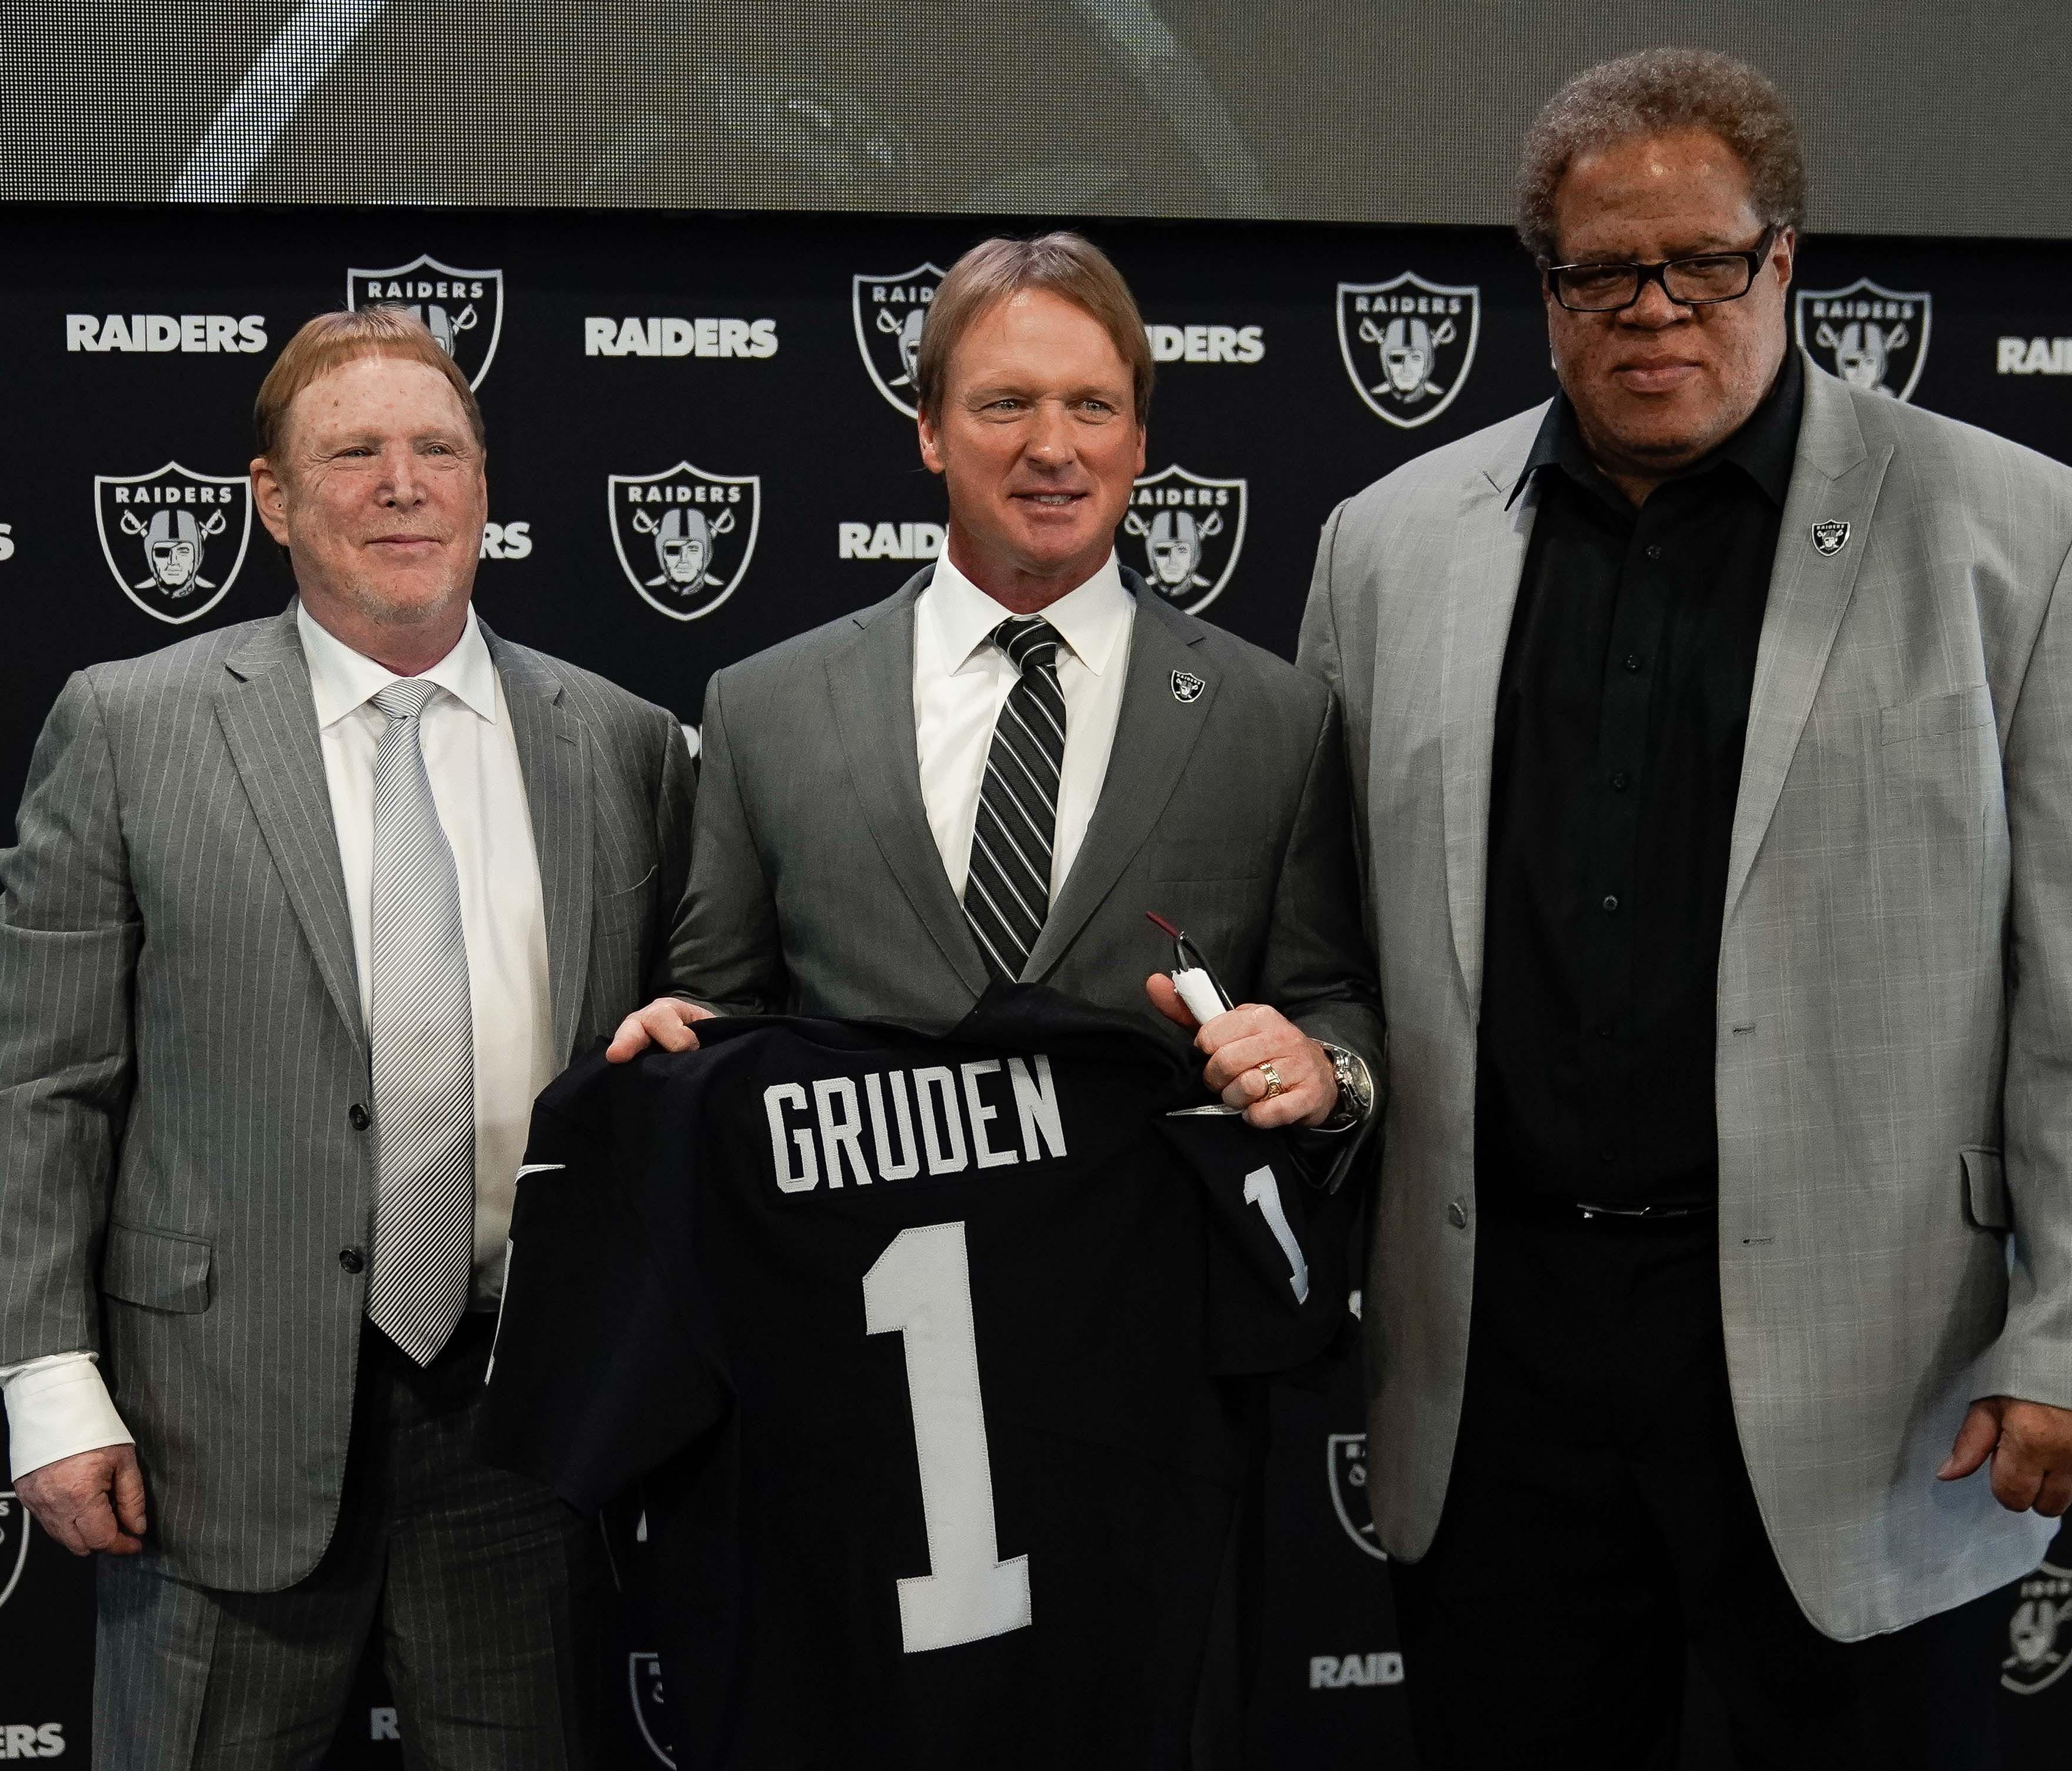 Oakland Raiders owner Mark Davis, head coach Jon Gruden, and general manager Reggie McKenzie pose for photos after a press conference.